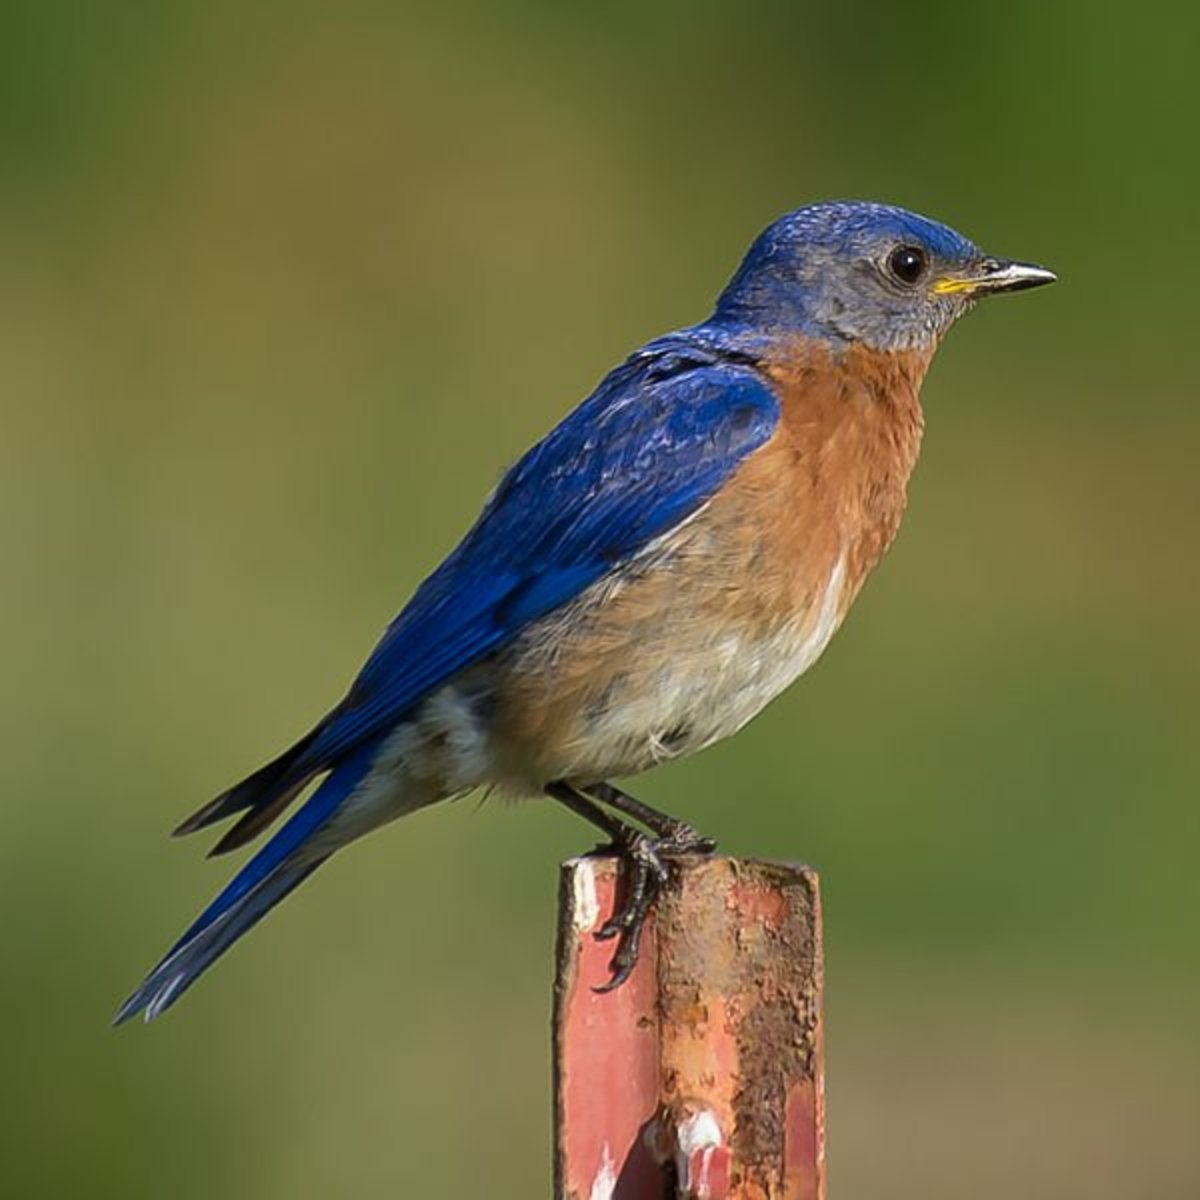 Eastern bluebirds are a striking blue above balanced by a white belly and rufus chest.